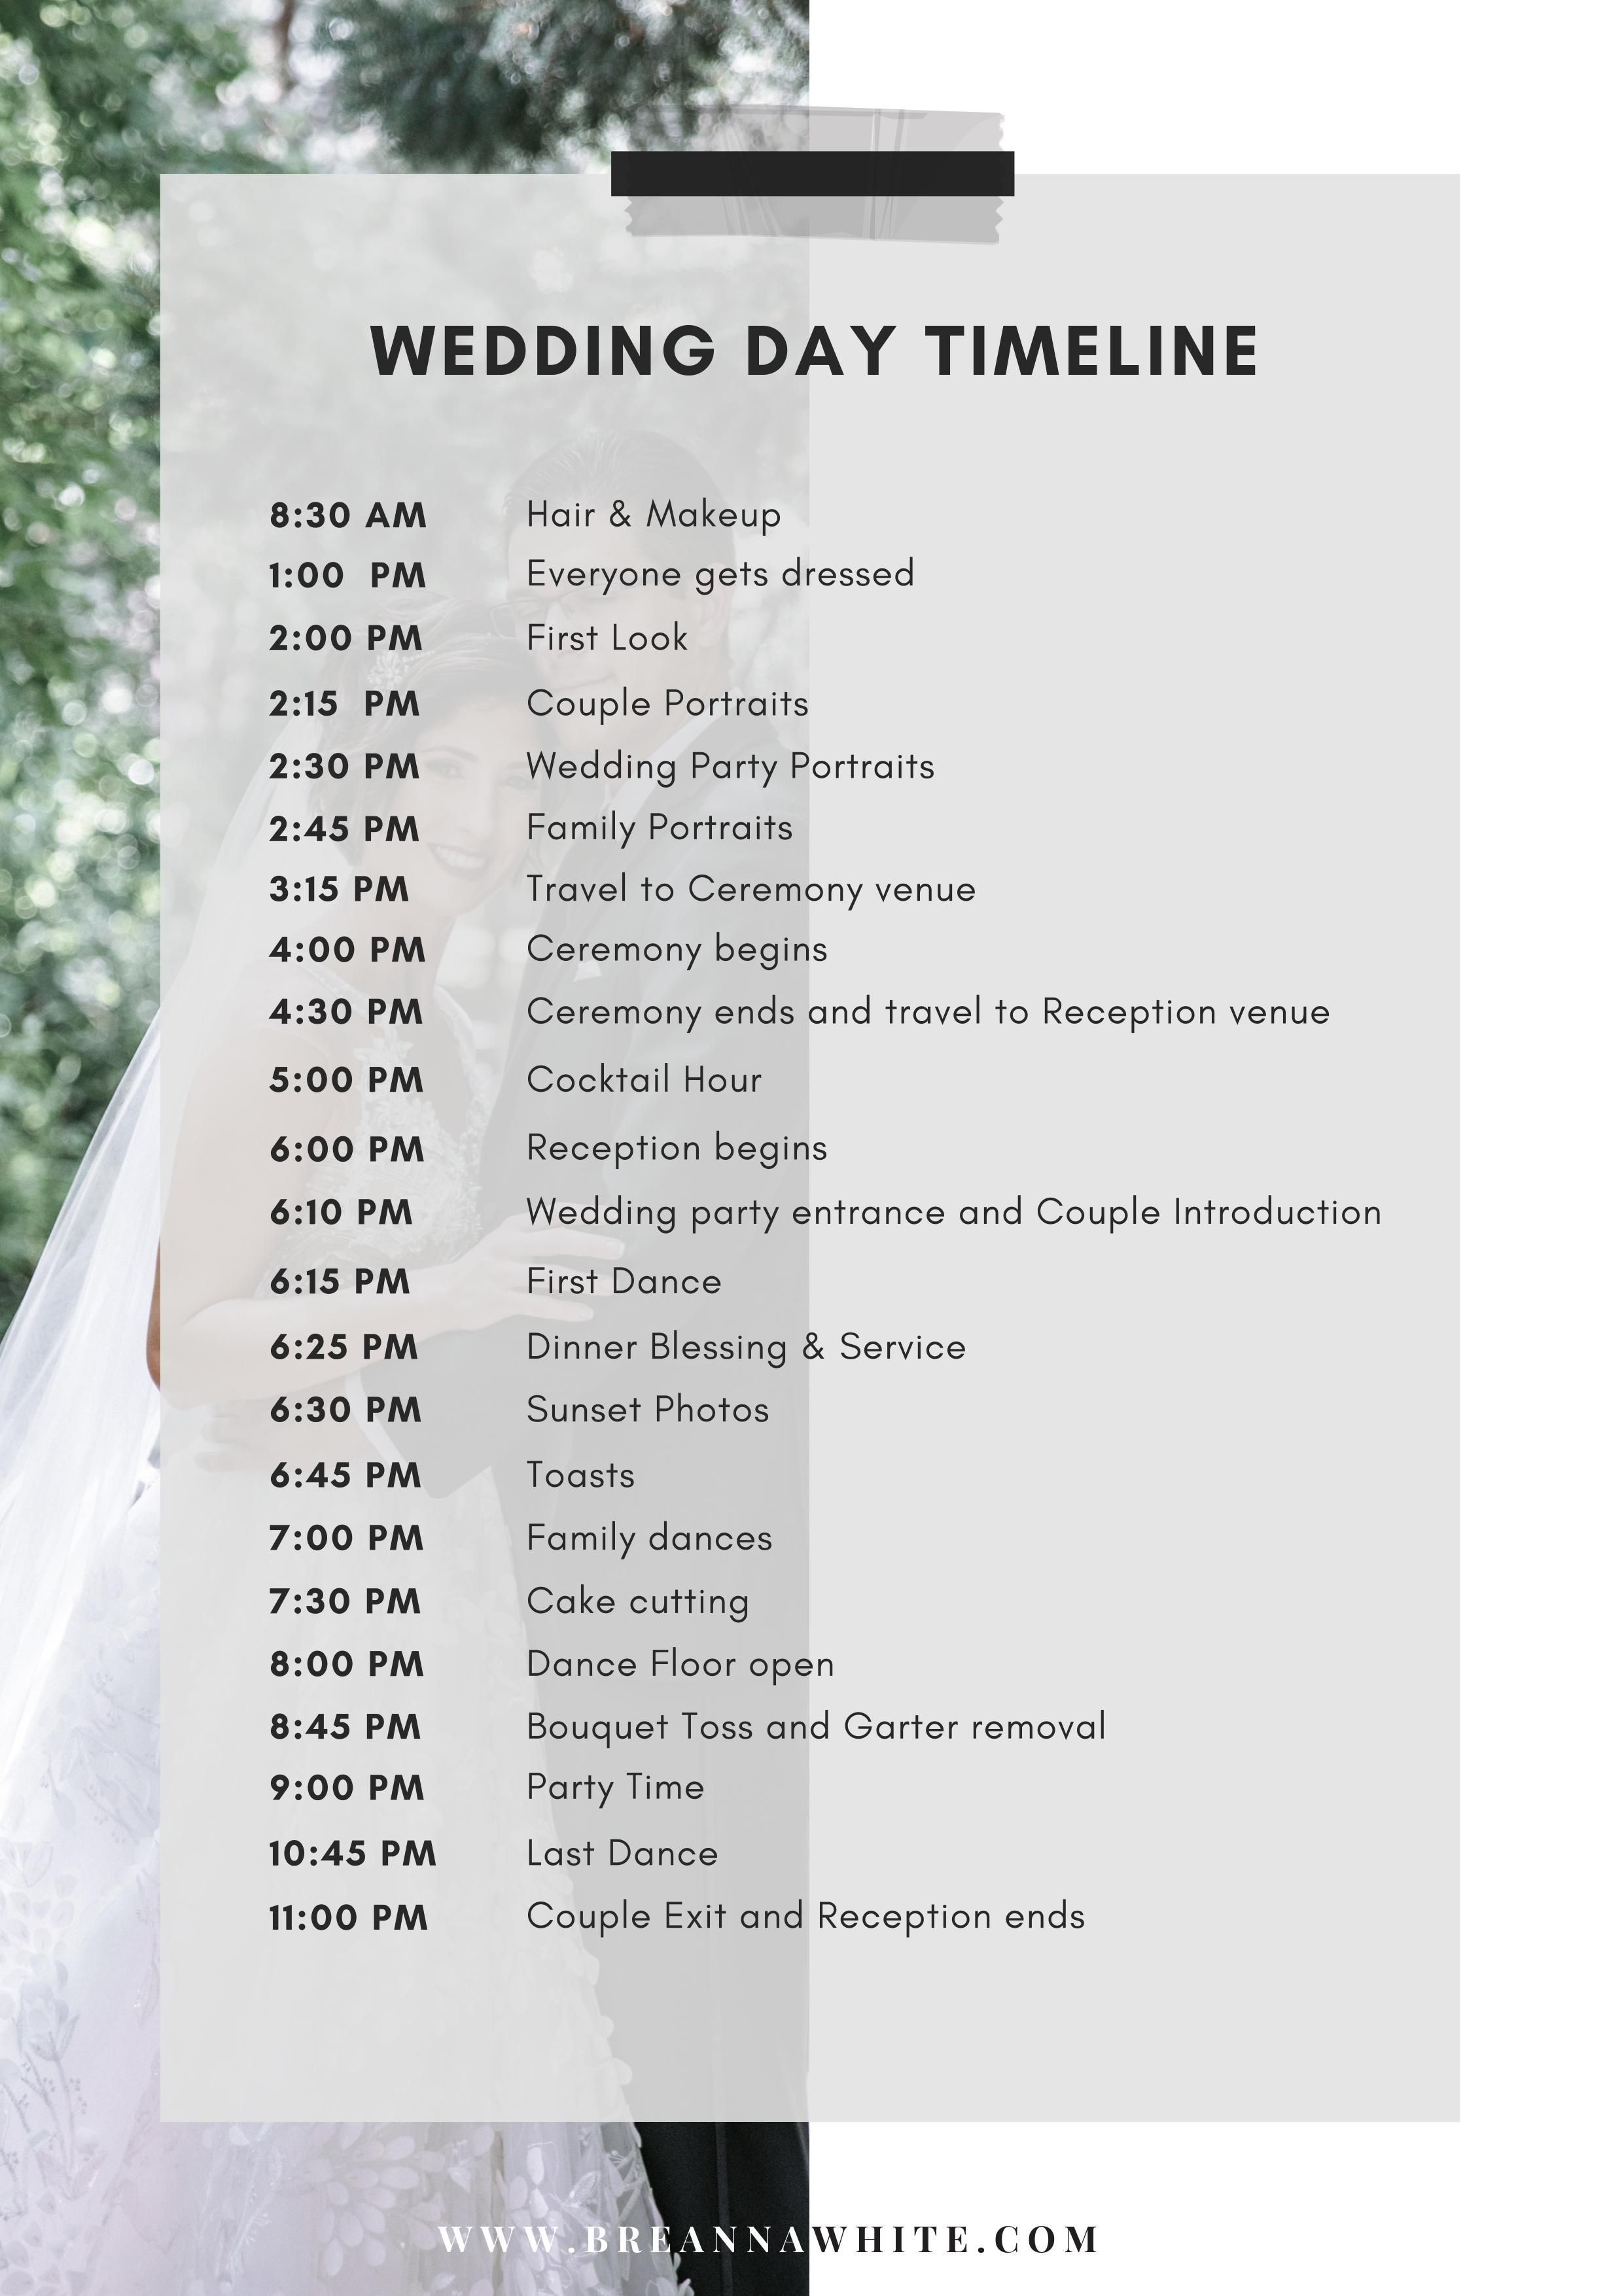 What to Include over a Wedding Checklist | Wedding Planning Timeline |  Wedding Checklist Time..… | Wedding planning timeline, Wedding timeline,  Wedding day timeline